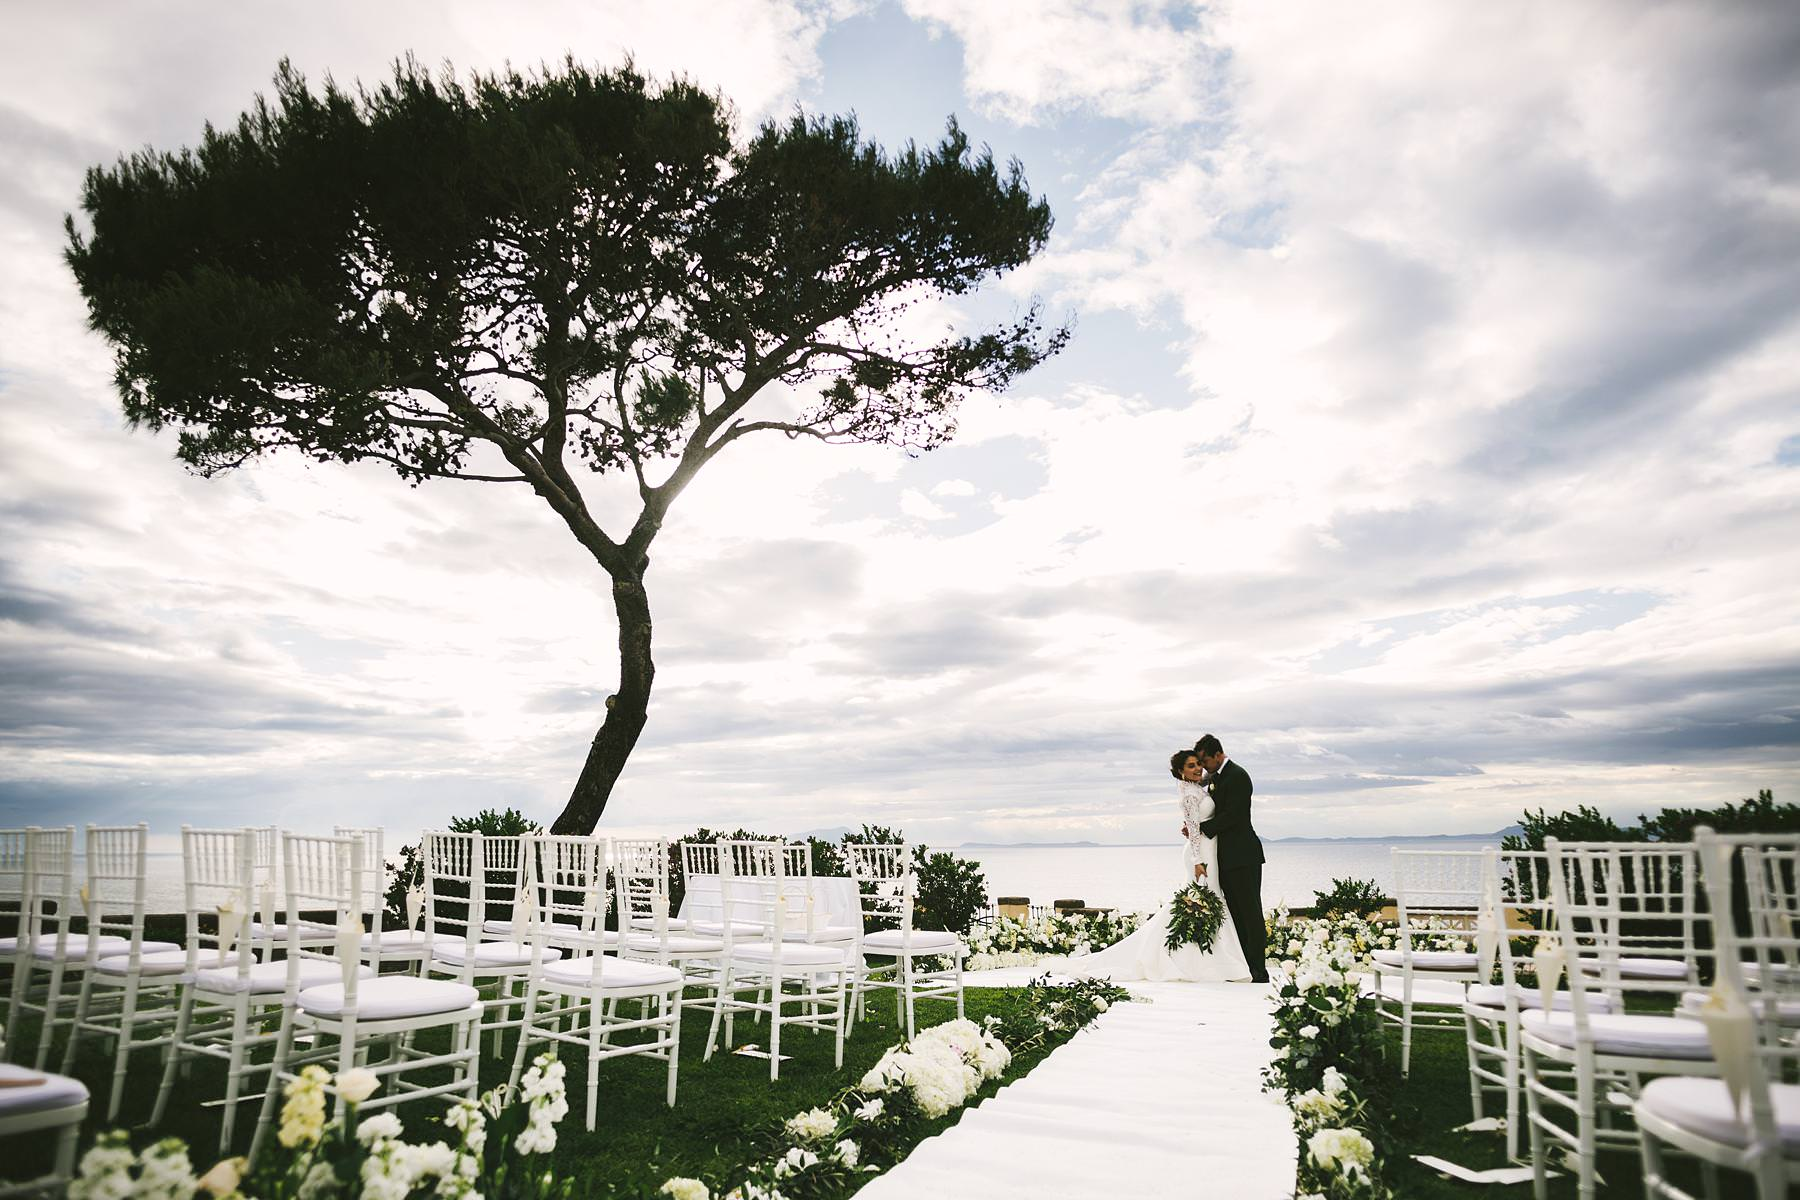 Amazing bride and groom wedding portrait in Sorrento at Villa Angelina. The amazing terrace of the villa is the perfect location for the outdoor ceremony and portrait session